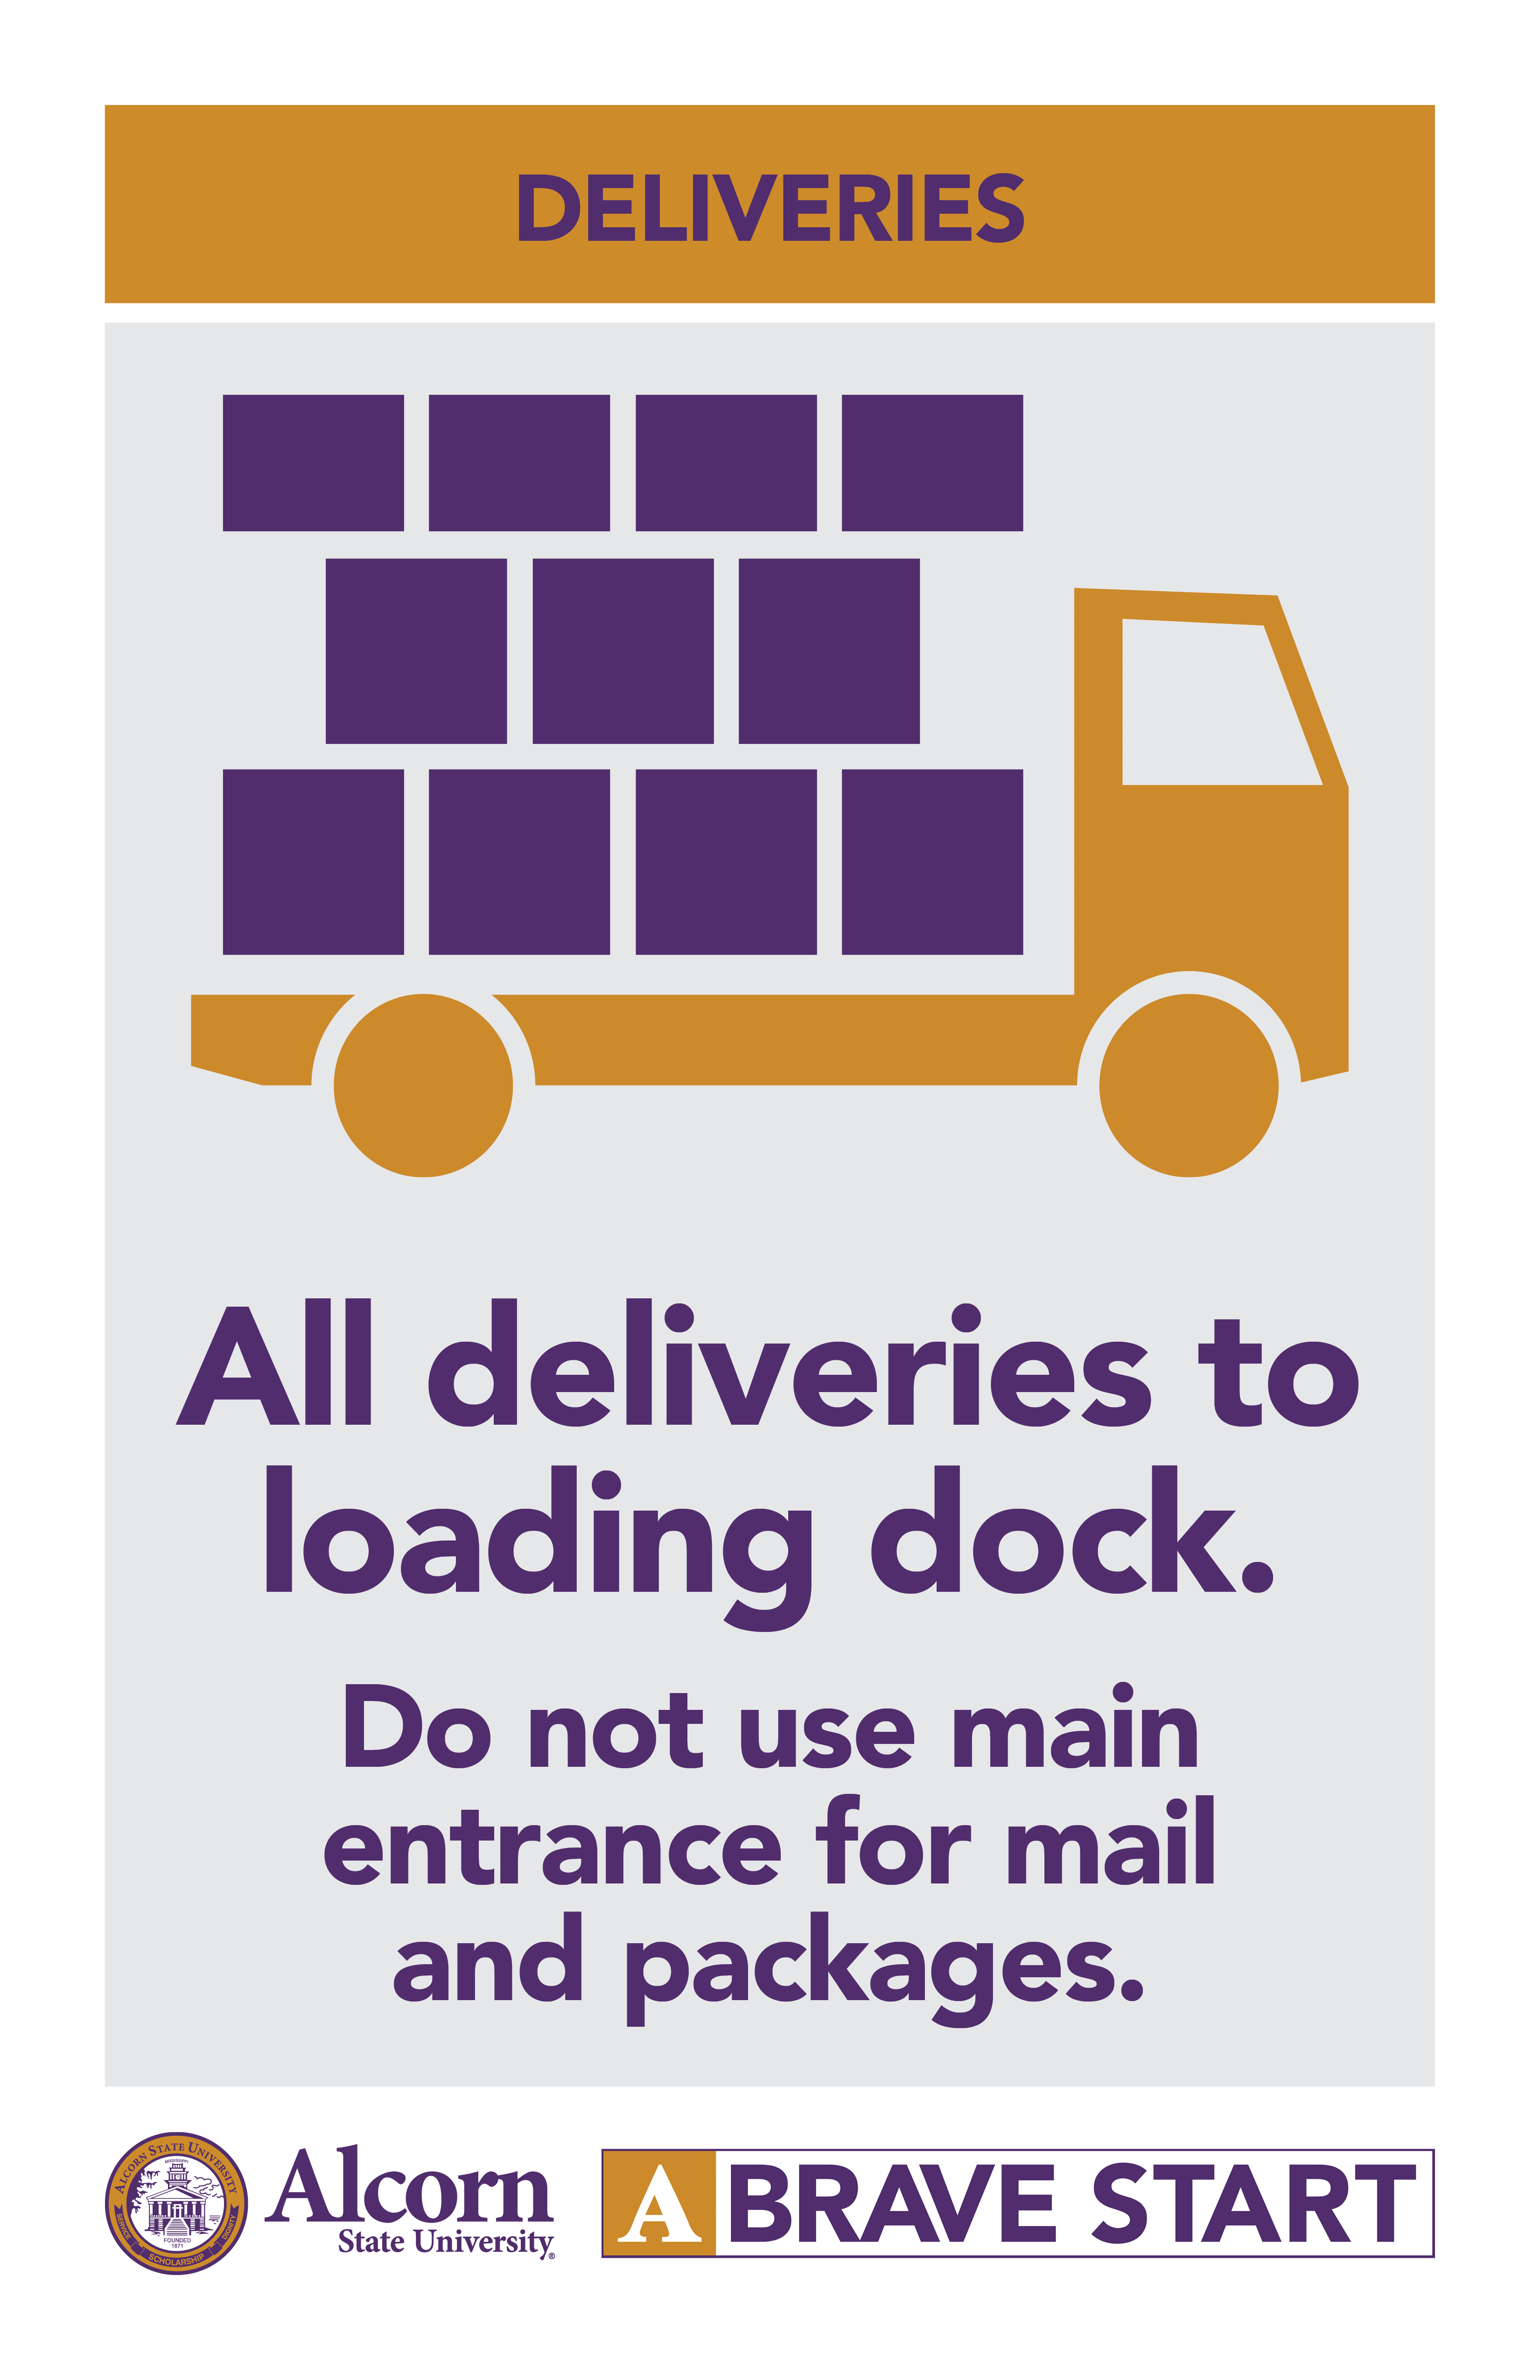 DELIVERIES. (Picture of a delivery truck with boxes) All deliveries to loading dock. Do not use main entrance for mail and packages. (Alcorn logo mark. A Brave Start logo mark.)